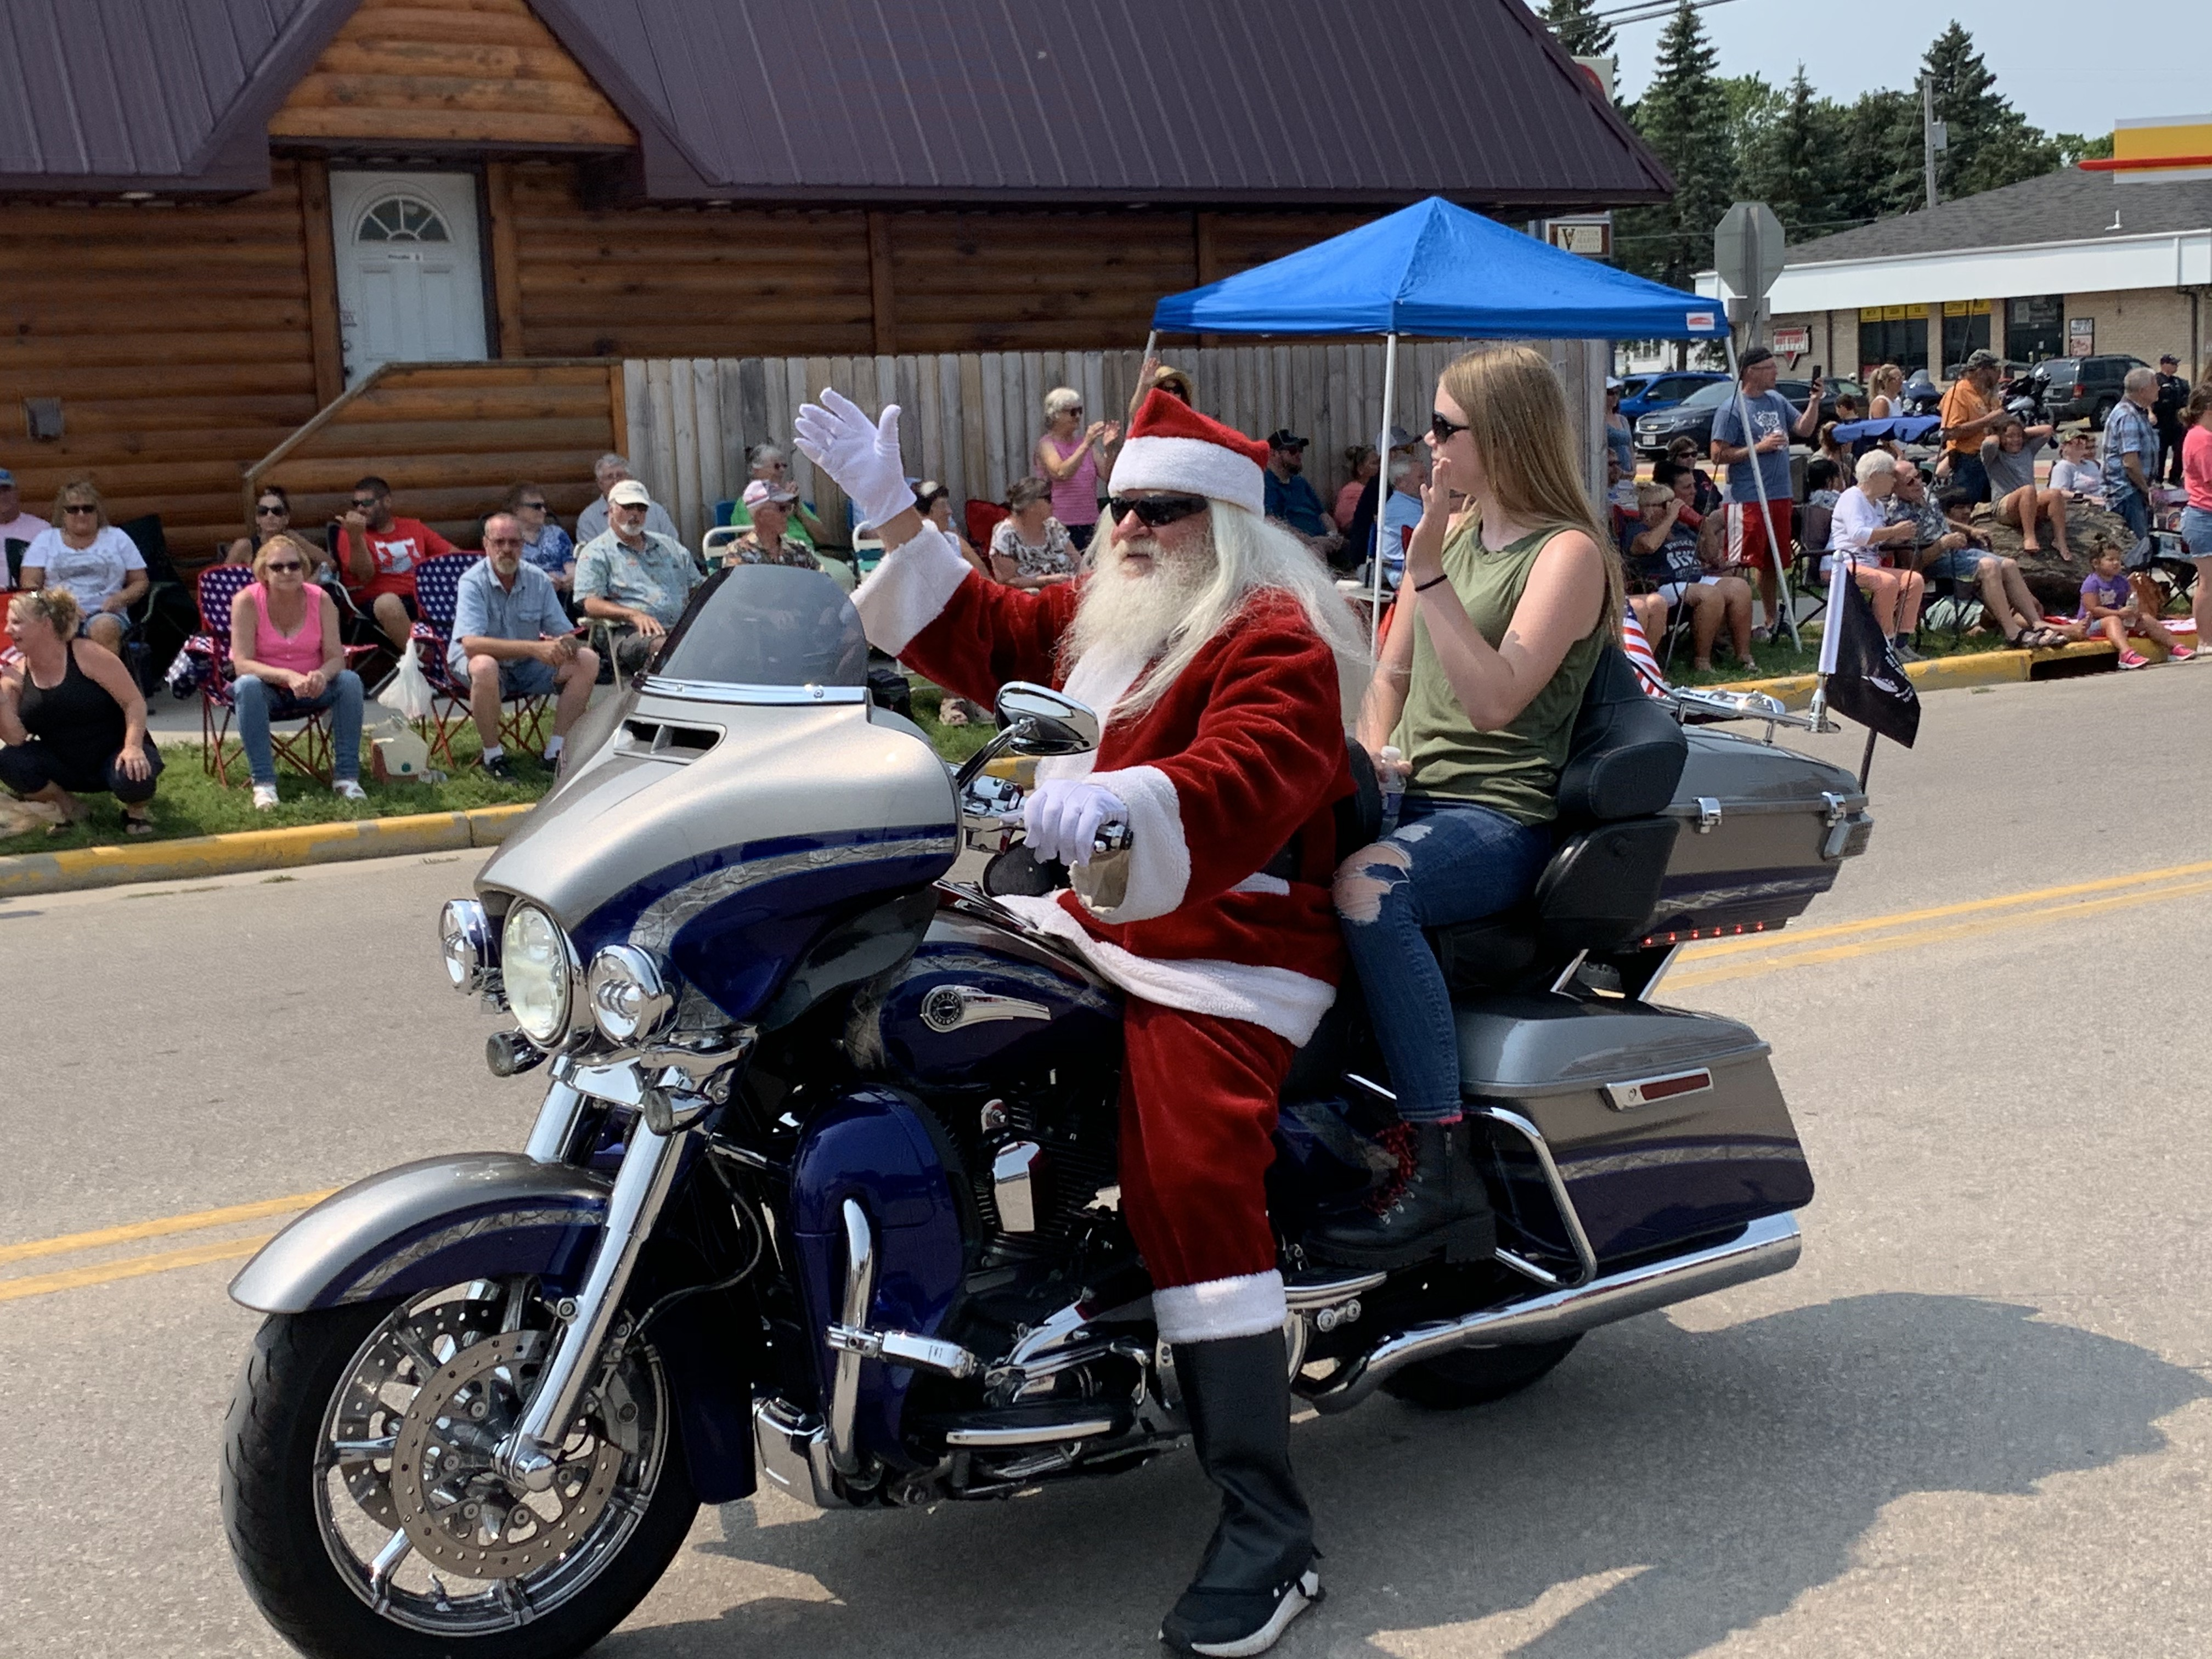 Santa Claus made an early appearance this year, as he drives a motorcycle with a passenger down Pulaski Street on July 18.Luke Reimer   NEW Media